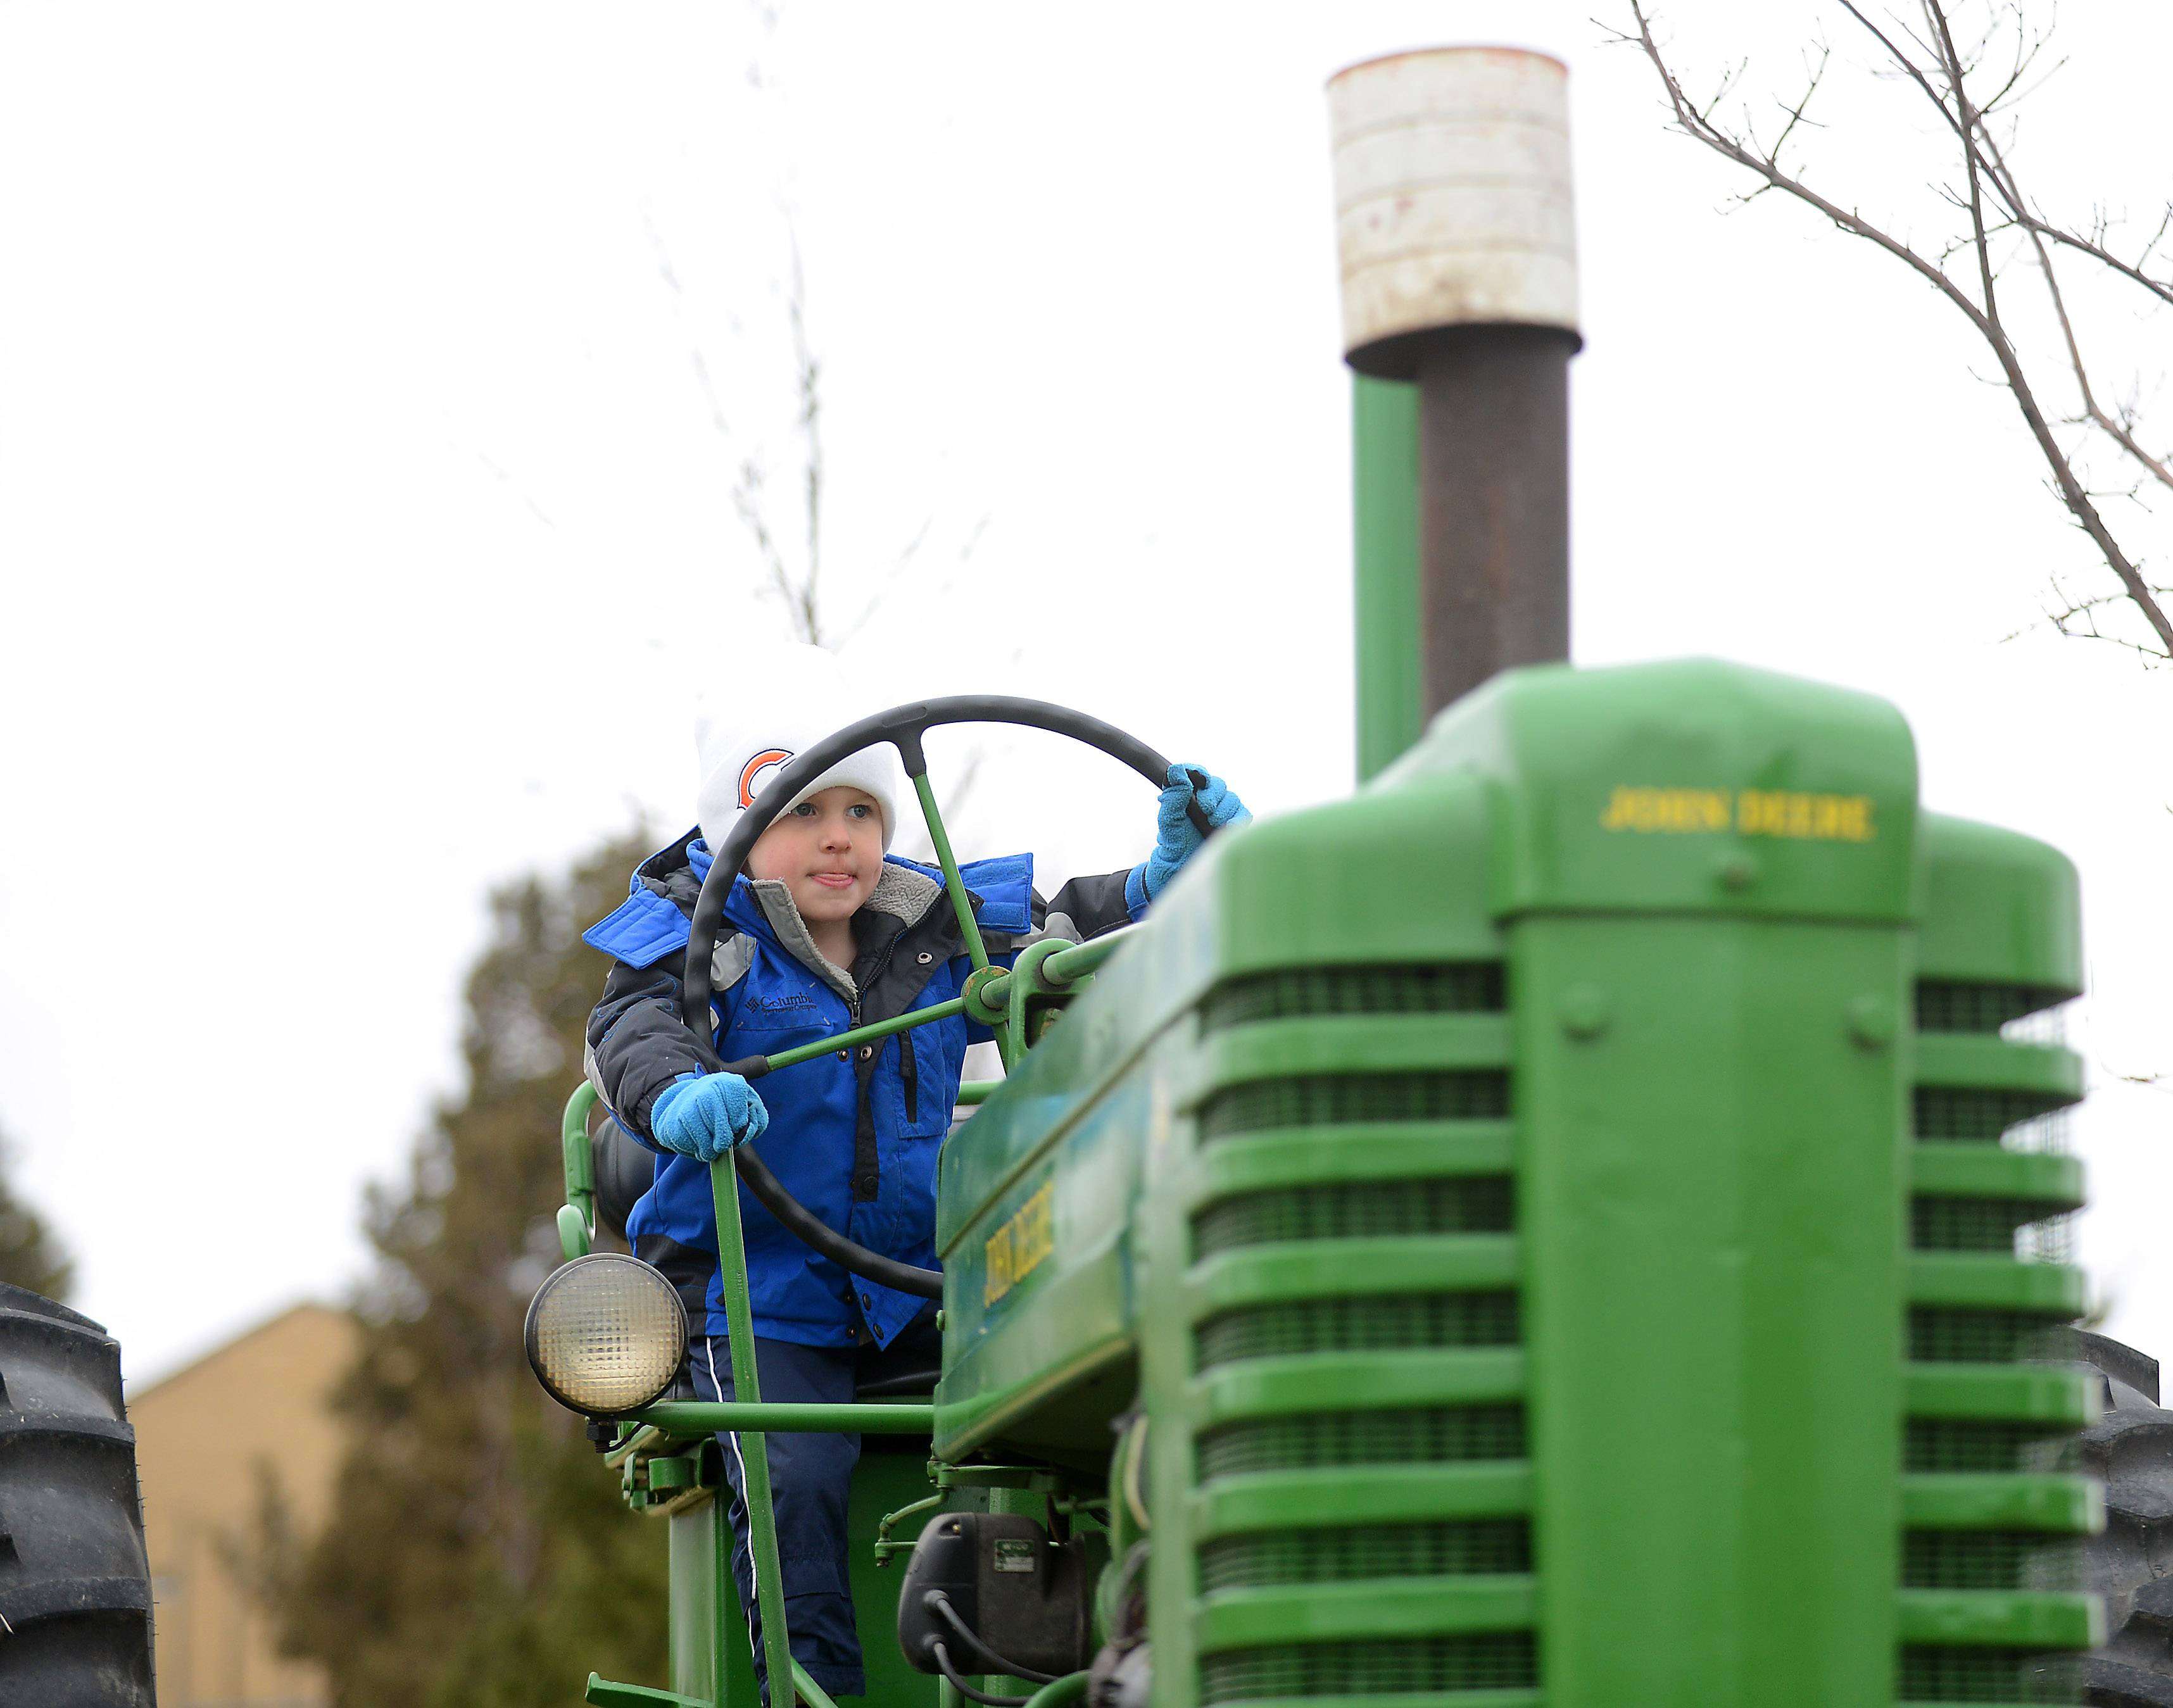 Tyler Bradley, 4, of St. Charles, takes the wheel of a 1947 John Deere tractor at the Kane County Farm Bureau Touch a Truck event in St. Charles Friday.